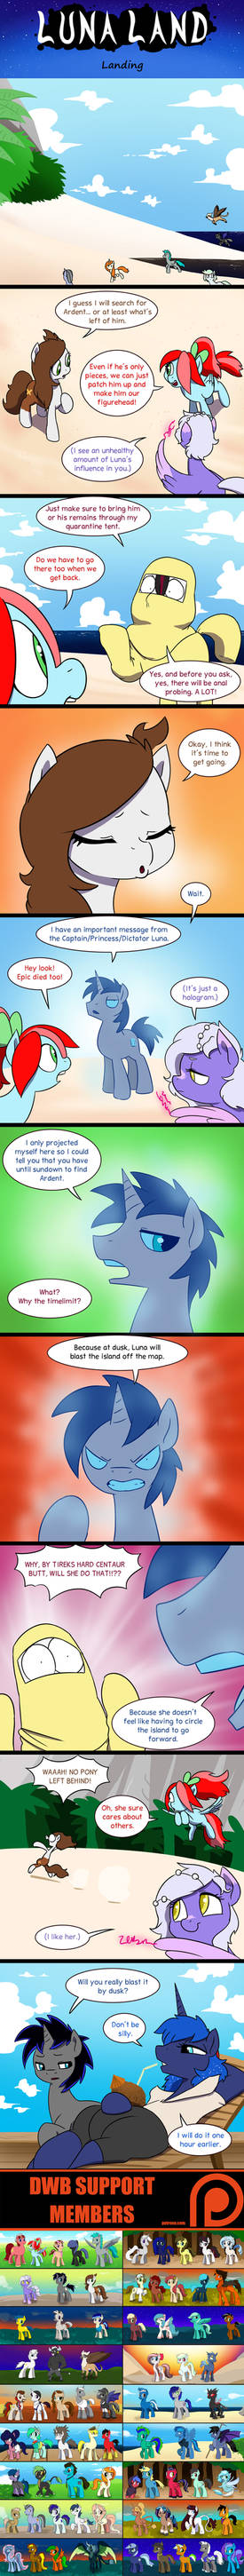 Luna Land Episode 9.0 by doubleWbrothers